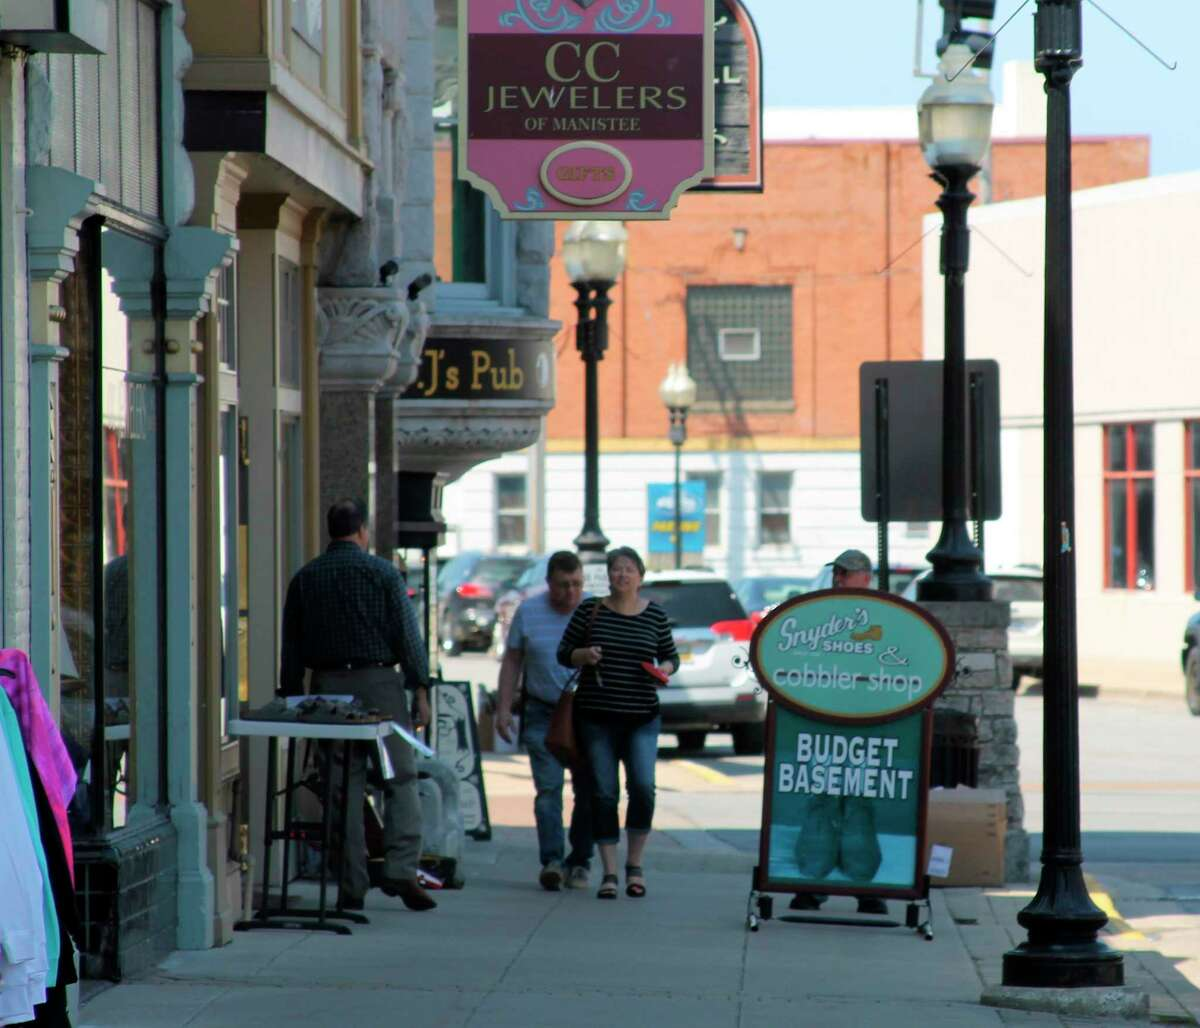 Manistee City Council wants the nextcity manager to be ready to handle downtown development, blight, housing issues and relationships between the city and surrounding townships. (File photo)